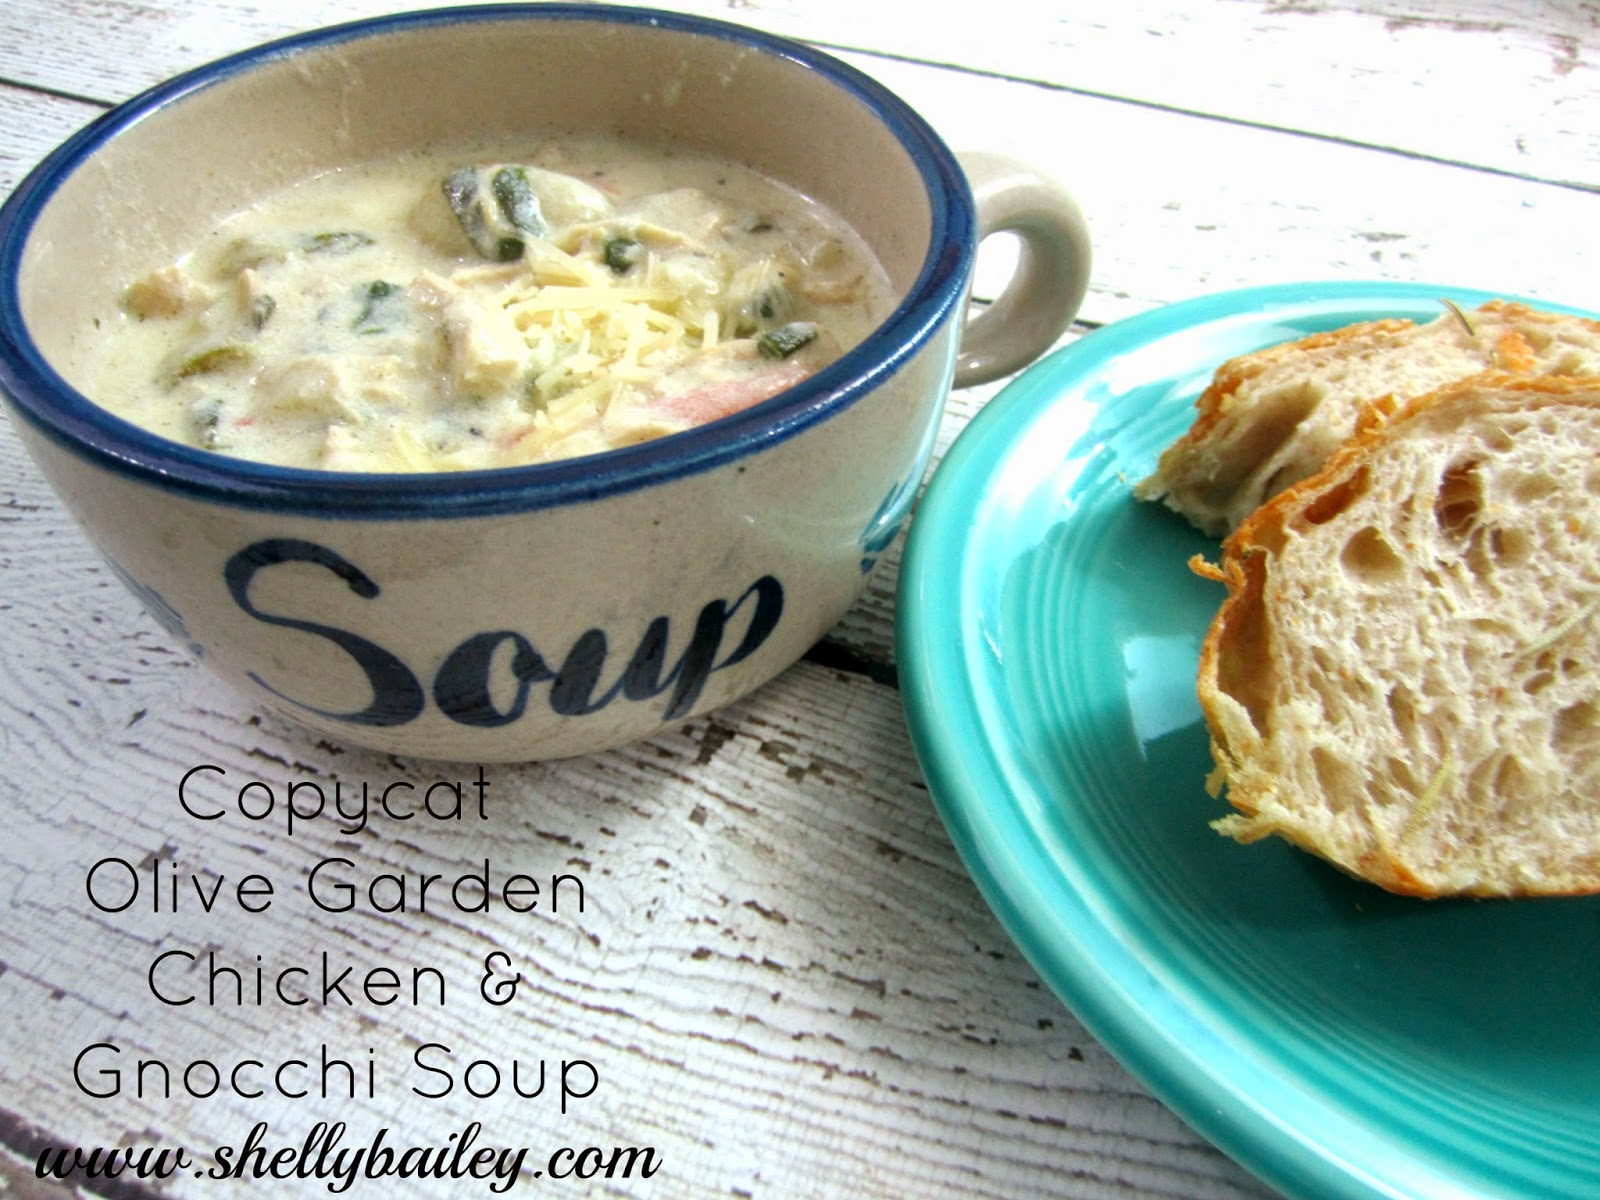 Shelly Bailey Recipe Share For Copycat Olive Garden Chicken And Gnocchi Soup